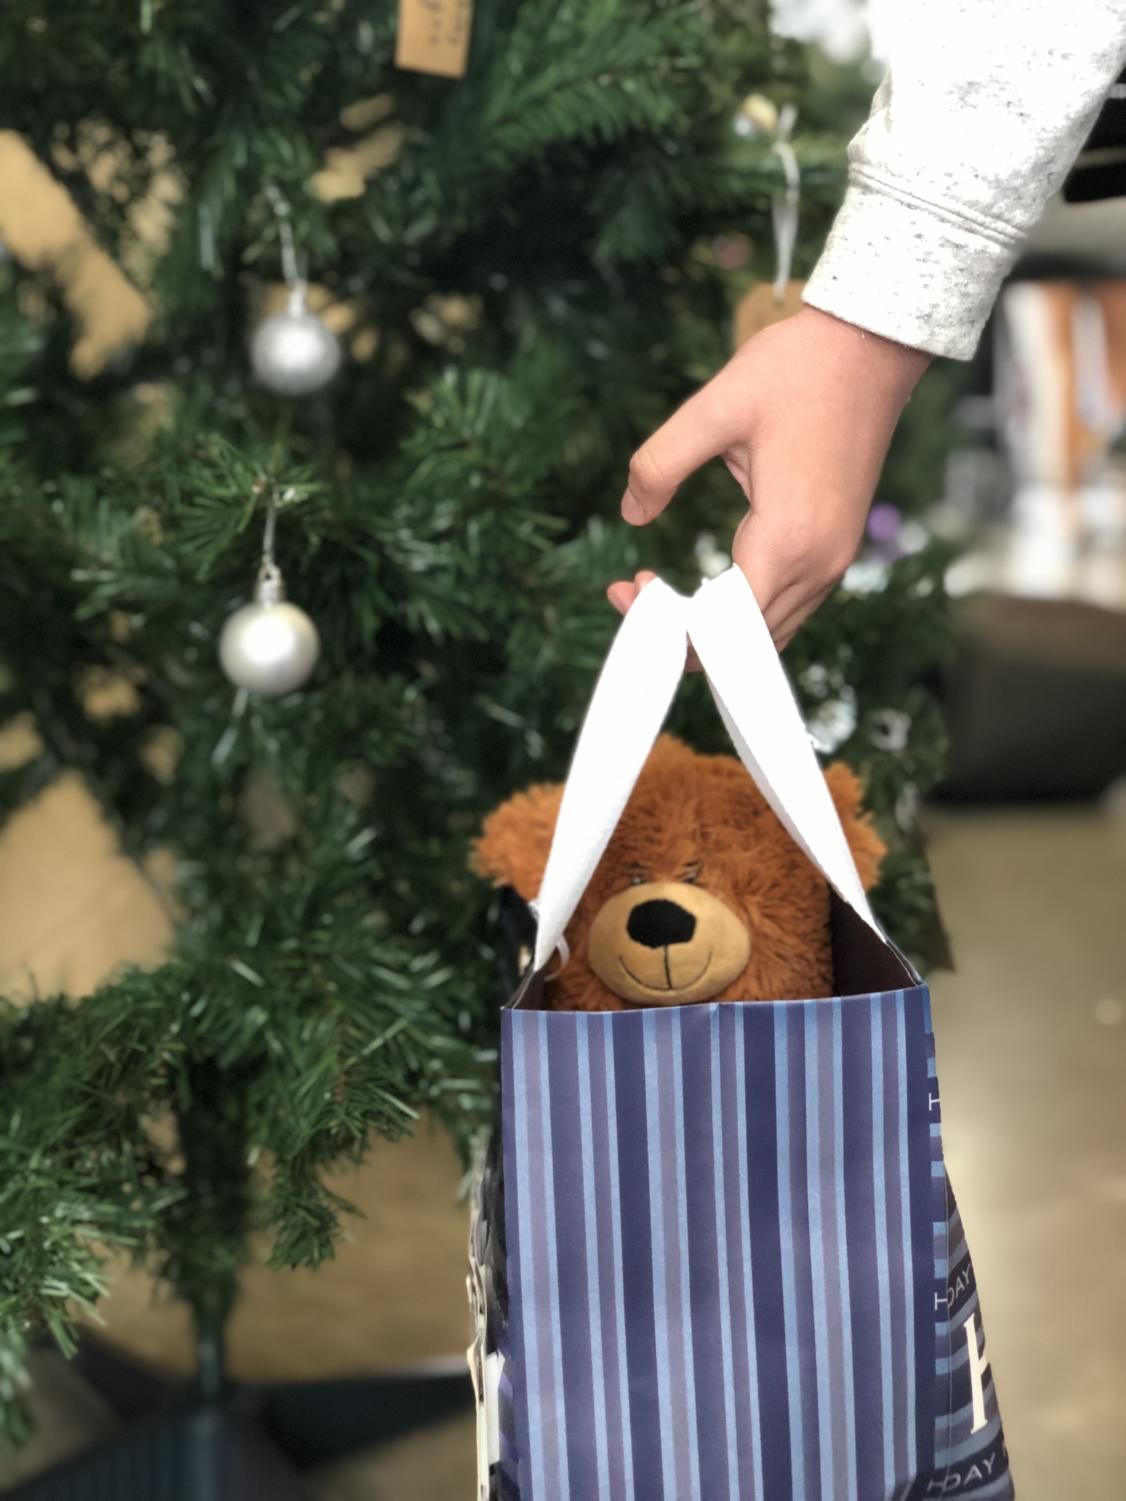 Students can donate to Toys for Tots by bringing in new toys and placing them under one of the three Christmas trees in the Student Union.